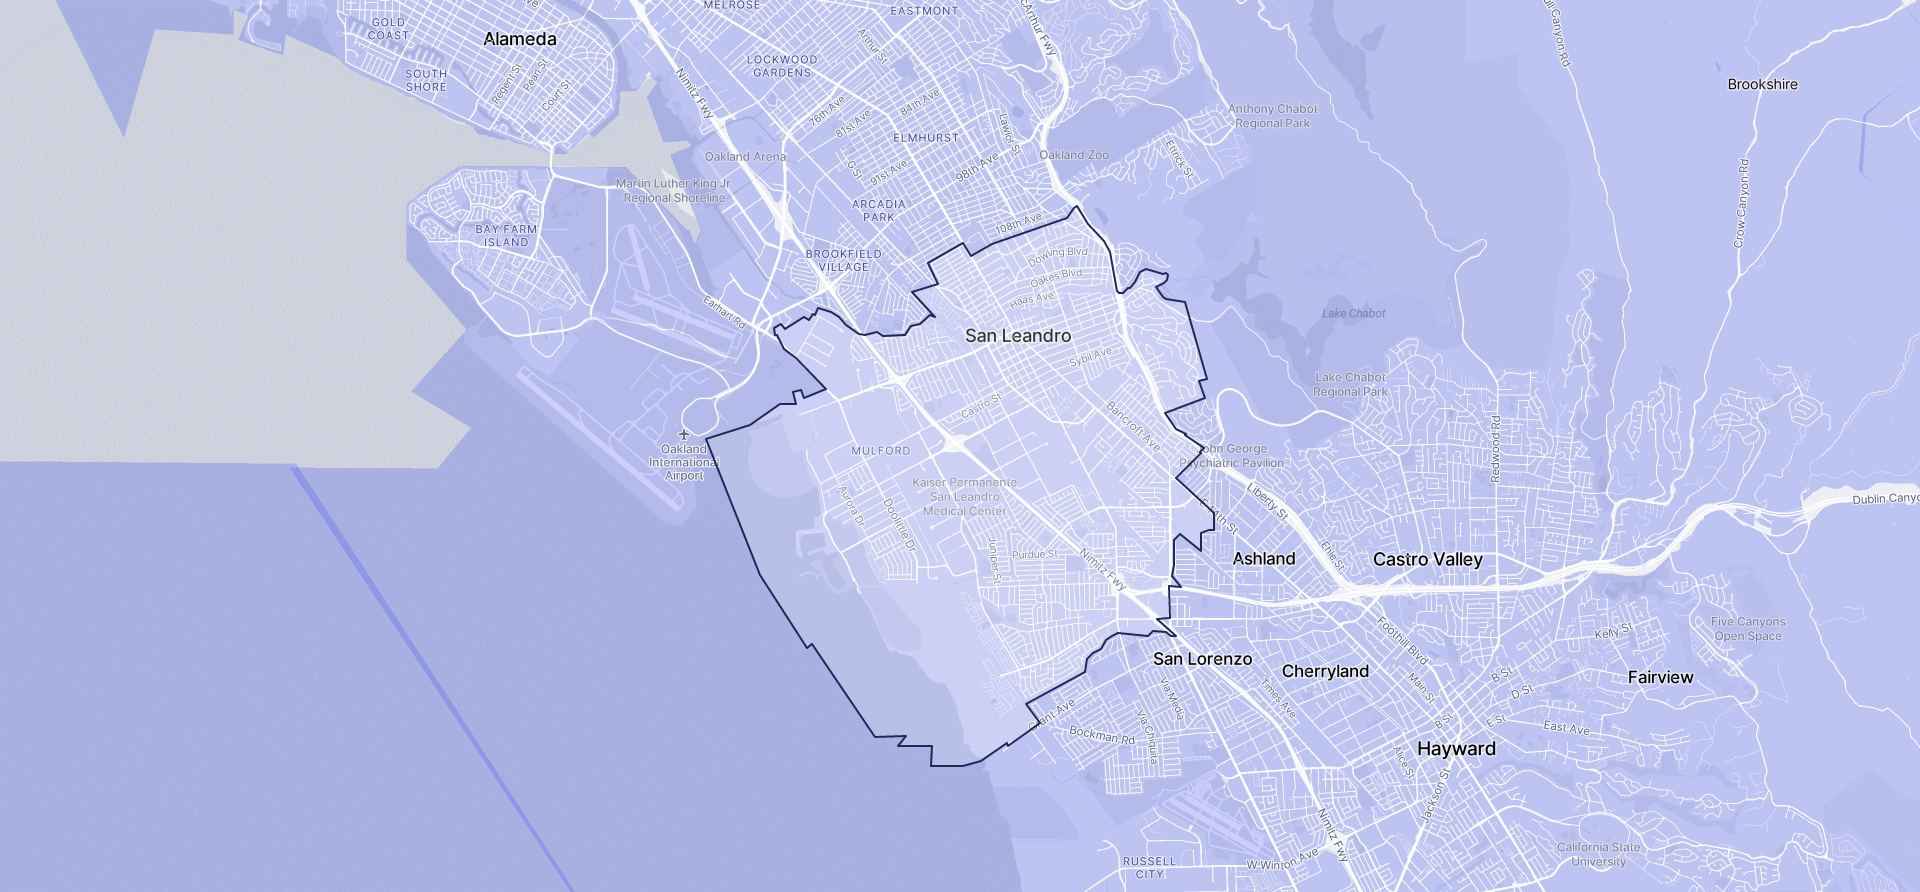 Image of San Leandro boundaries on a map.